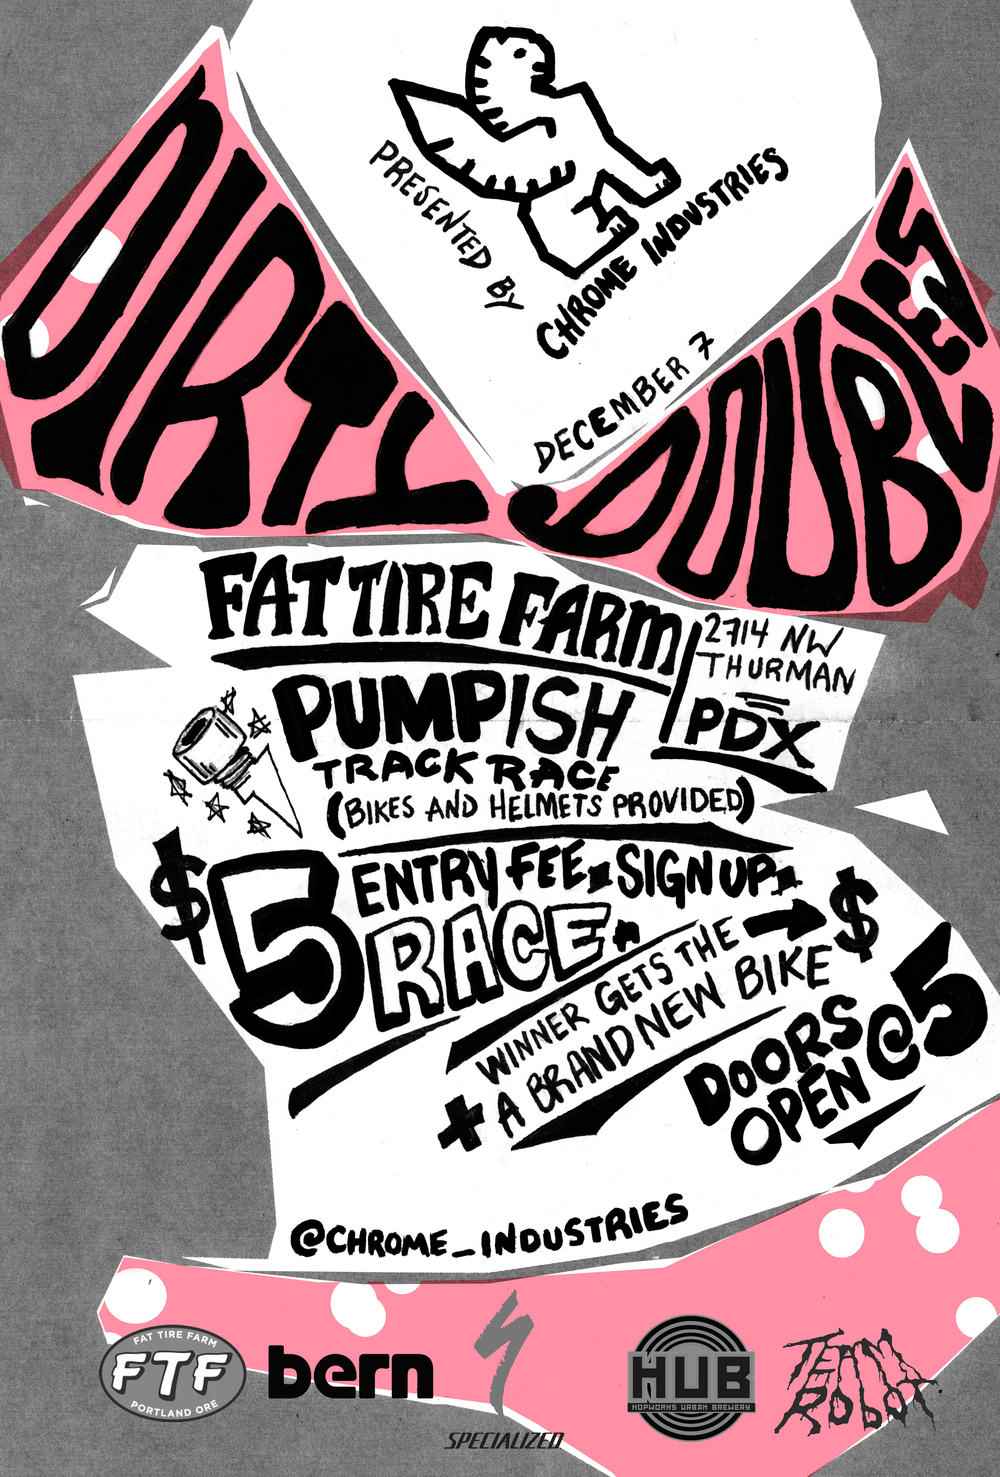 DirtyDoubles_Flyer_Large.jpg